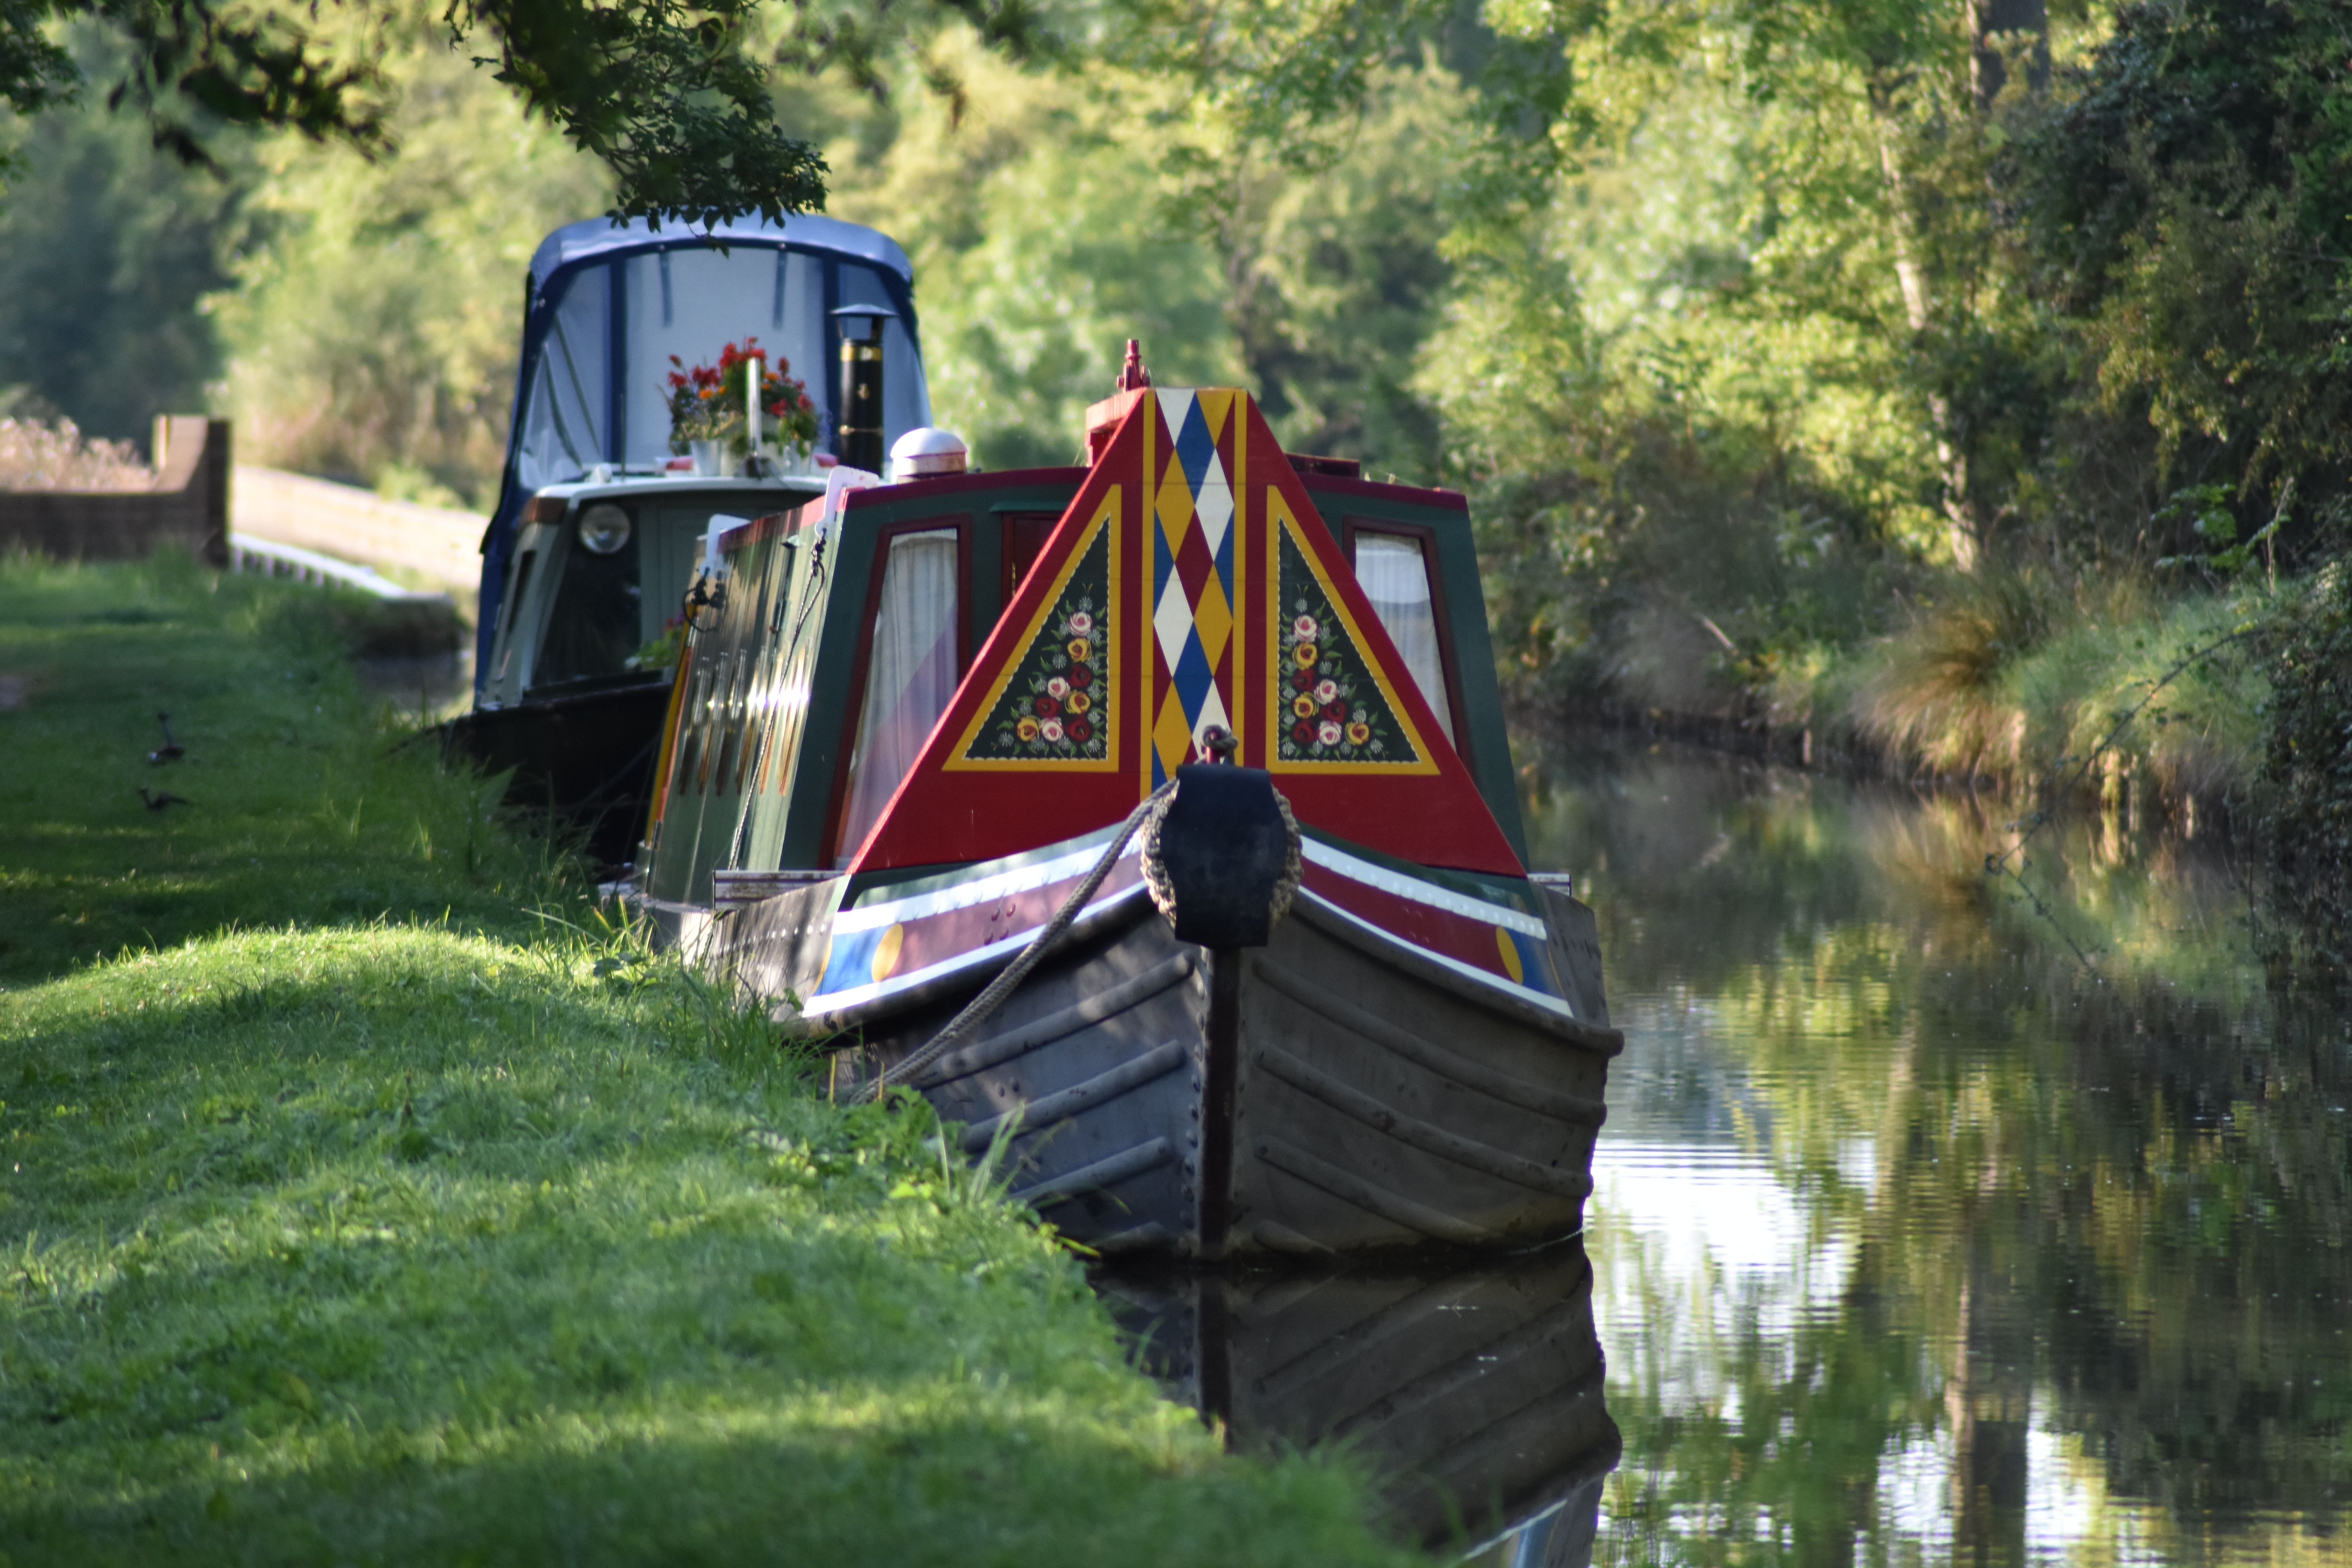 Houseboats-in-Stratford-upon-Avon.jpg?1568038930